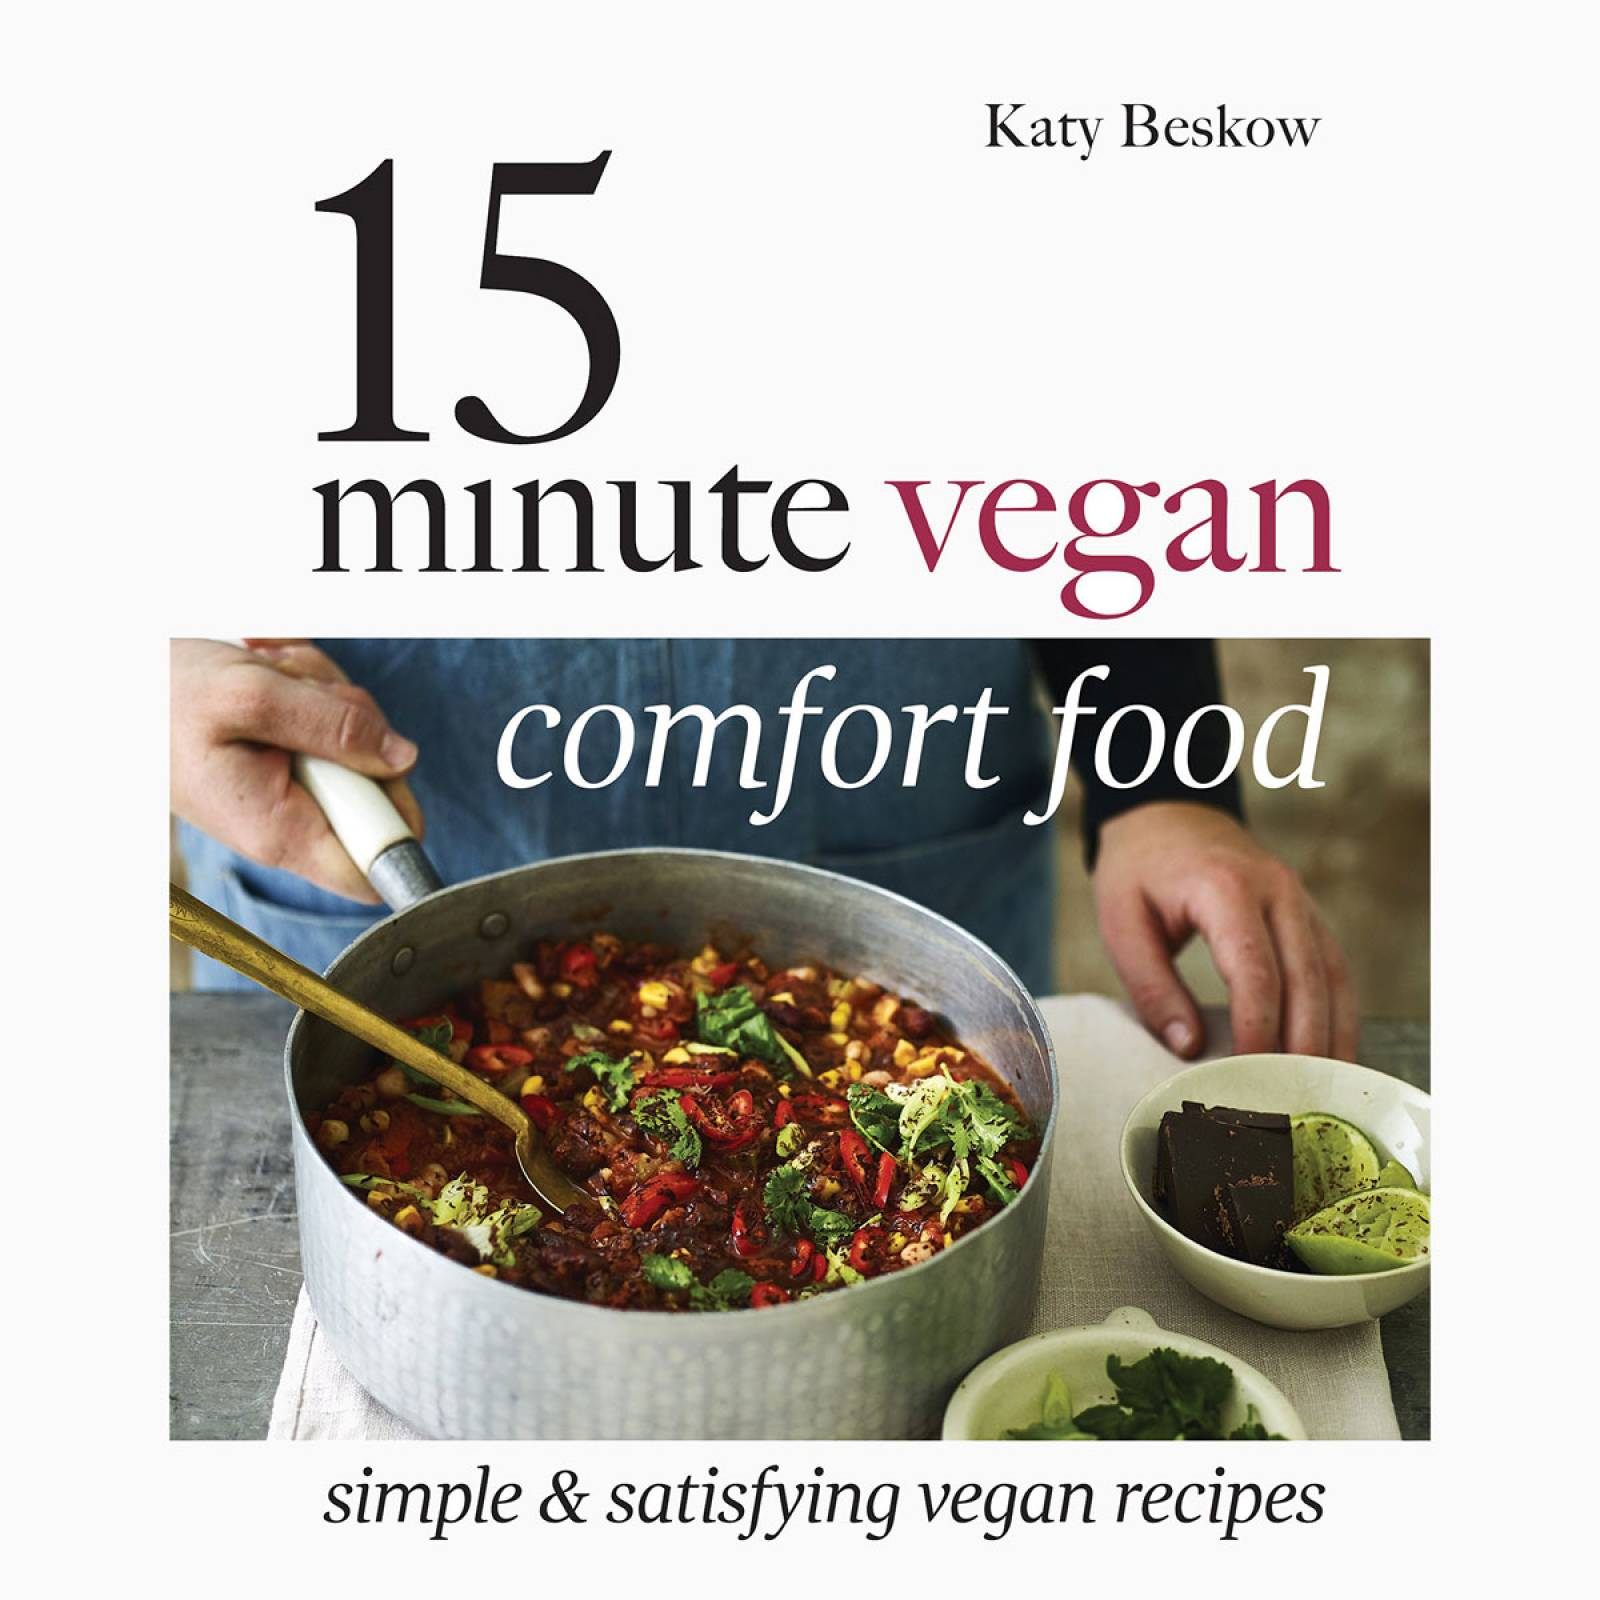 15 Minute Vegan Comfort Food - Hardback Book thumbnails